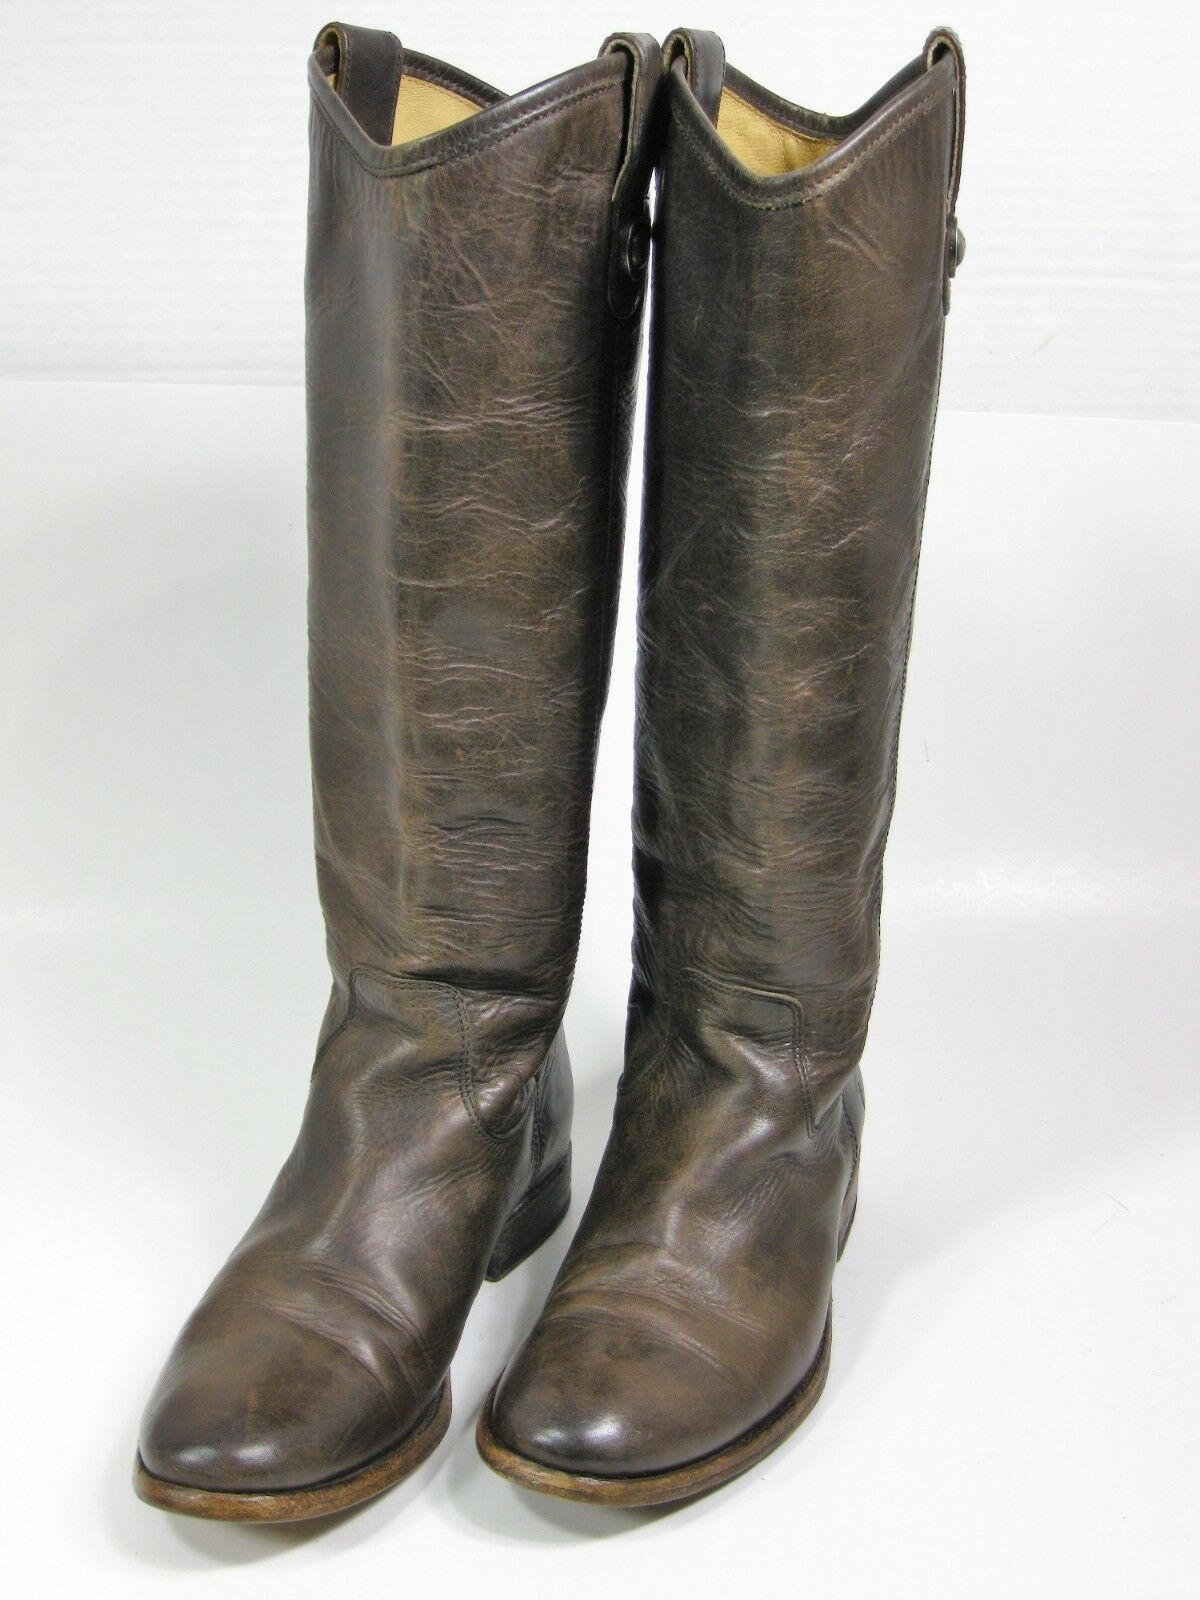 FRYE 3477172 SLT Women's Melissa Button Riding Boot Brown Leather Size 6 B